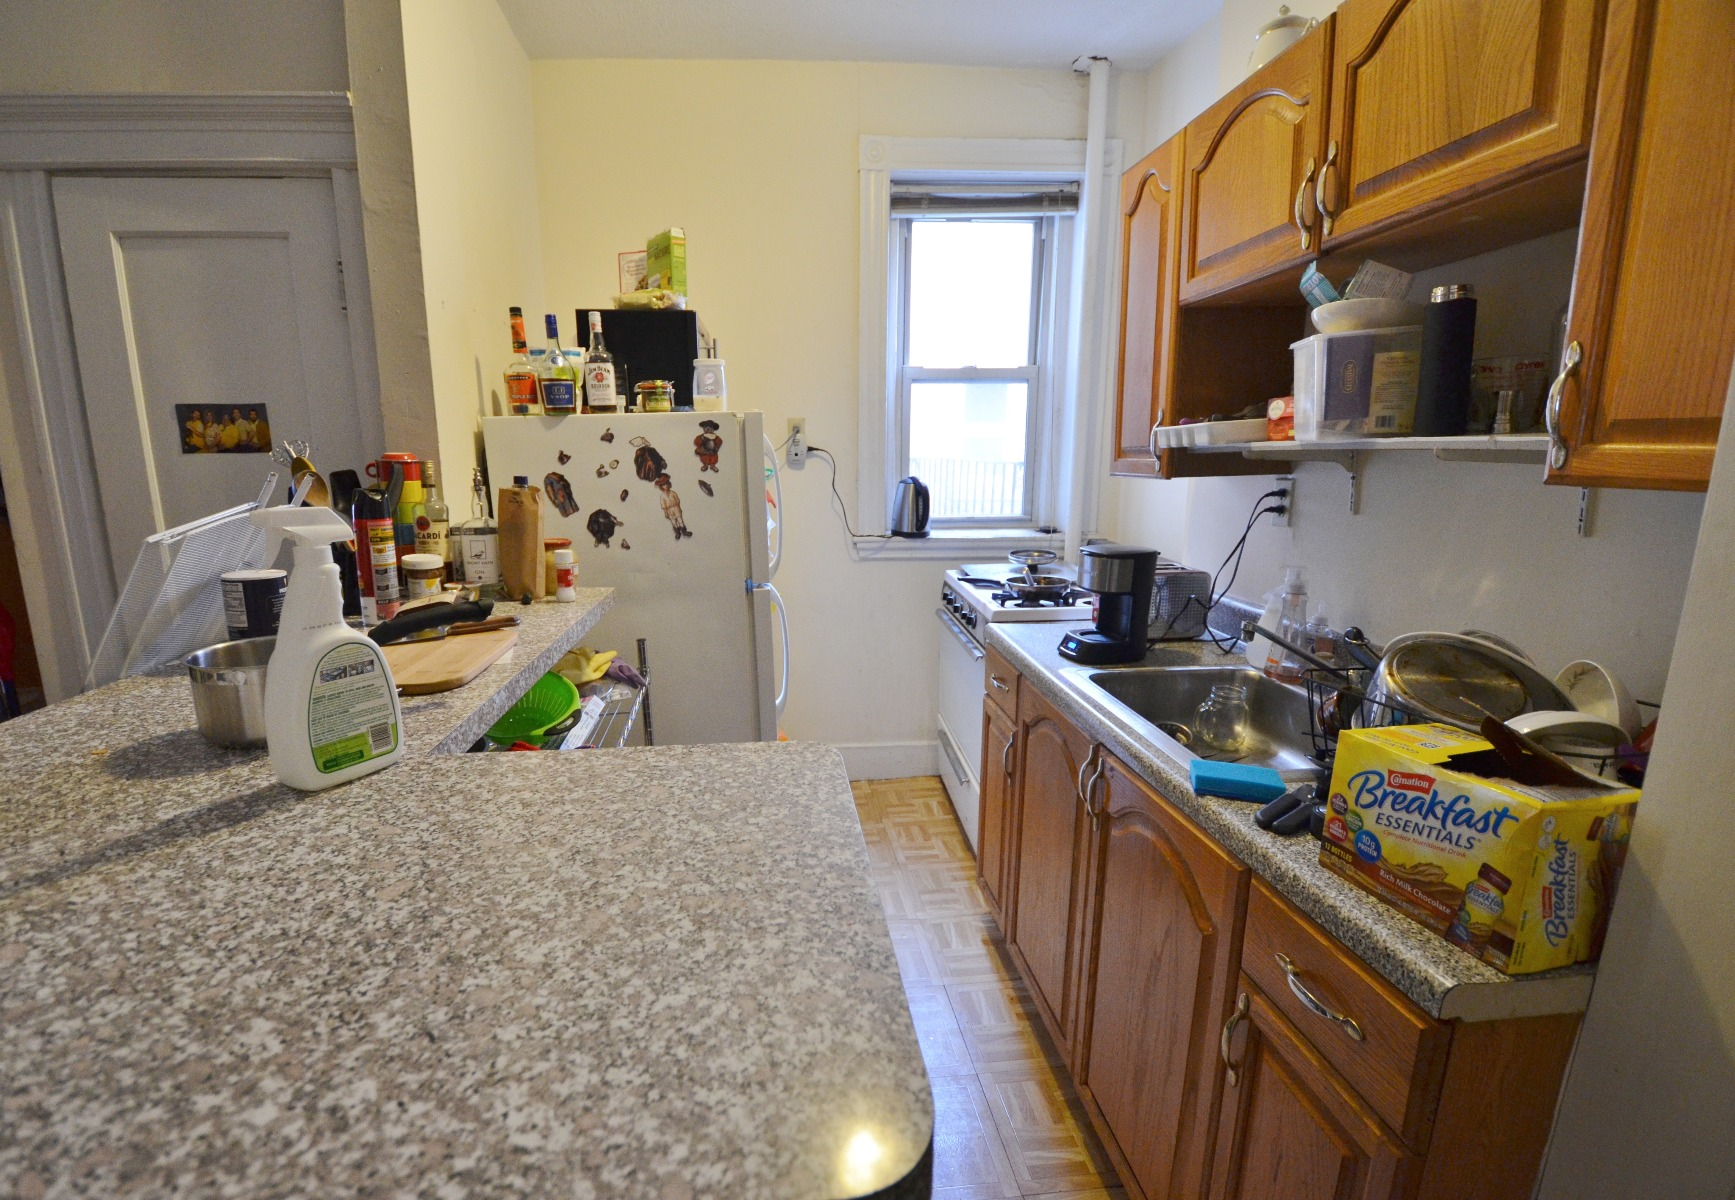 Avail 9/1 - Stunning Sunny 2BR Split on Peterborough St